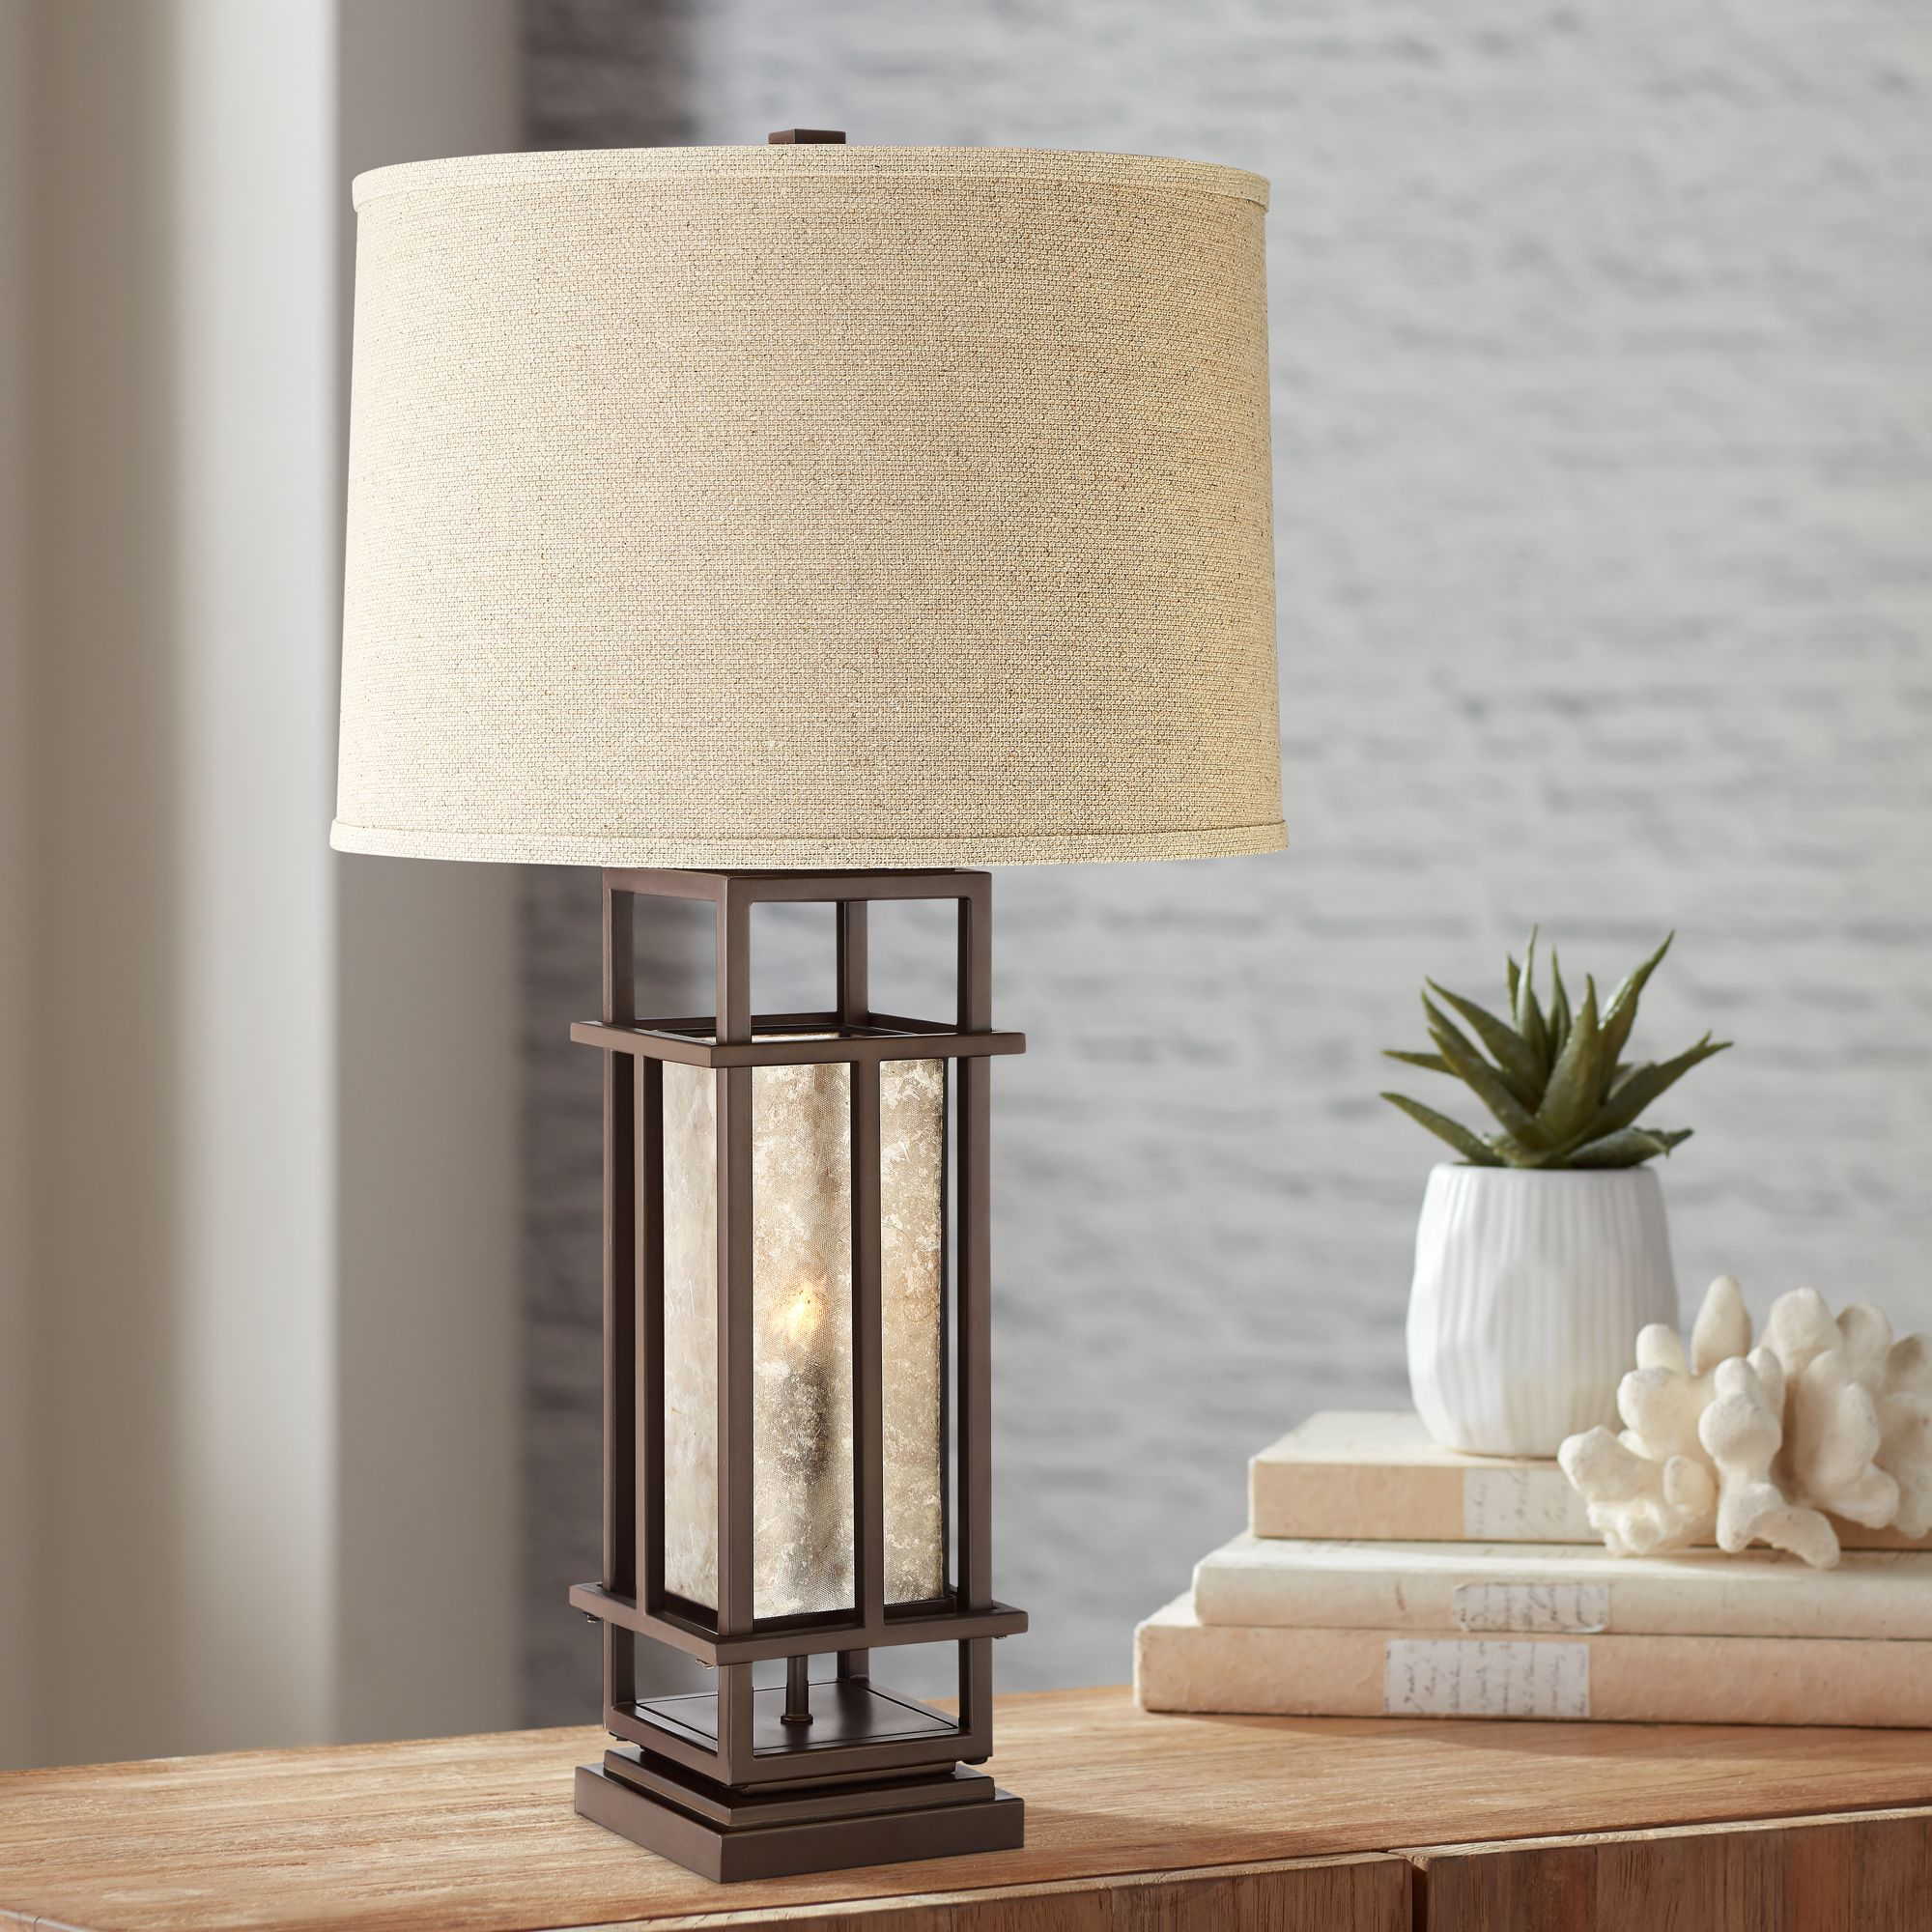 Picture of: Franklin Iron Works Rustic Farmhouse Table Lamp With Nightlight Led Caged Brown Oatmeal Fabric Drum Shade For Living Room Bedroom Walmart Com Walmart Com